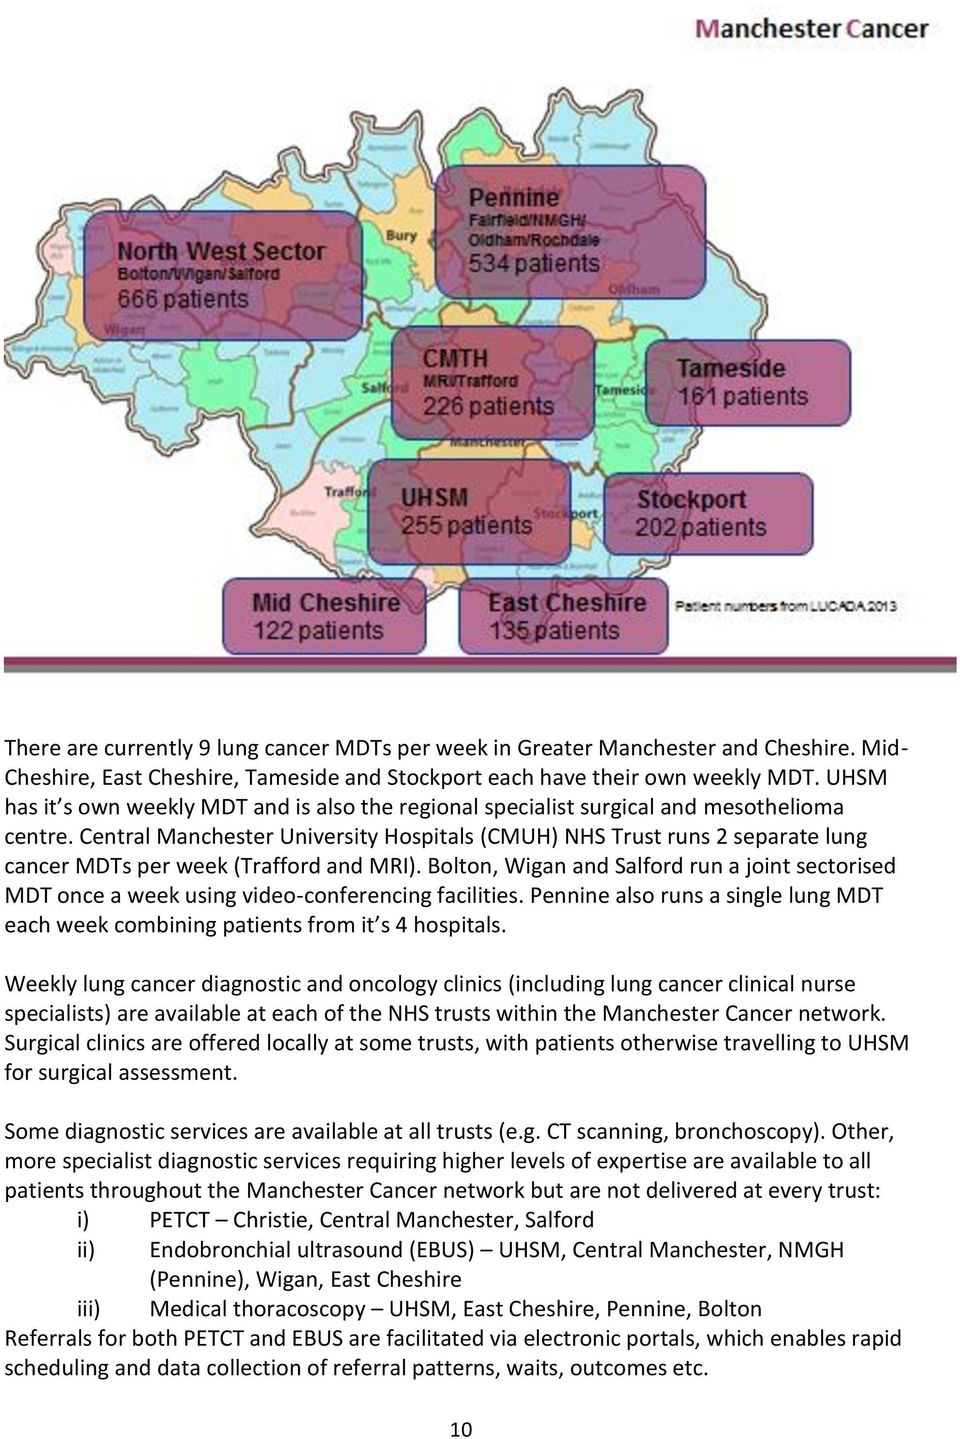 Central Manchester University Hospitals (CMUH) NHS Trust runs 2 separate lung cancer MDTs per week (Trafford and MRI).